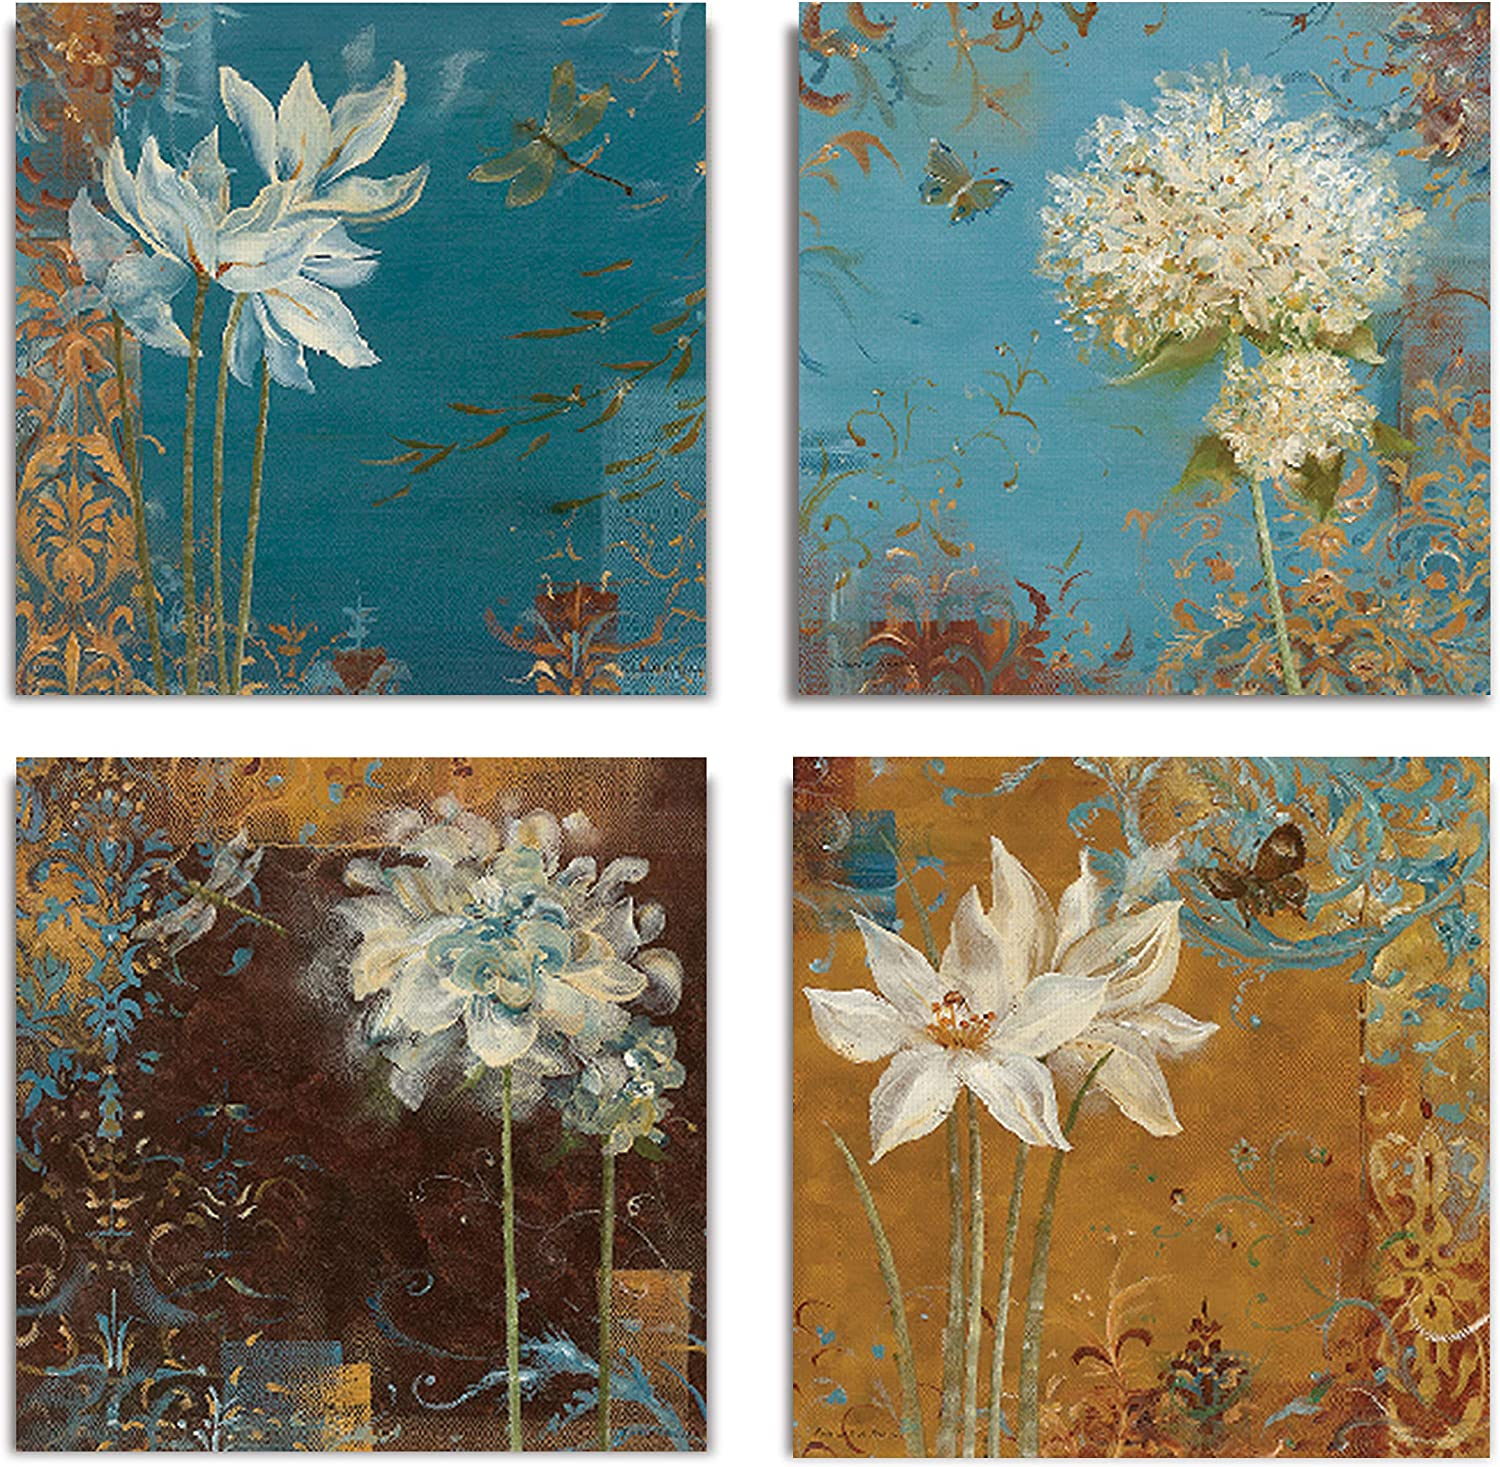 WEXFORD HOME Krishna's Garden Flower Spring Collection Canvas Print 4 Panels Set Décor for Home Office Wall Art, 24X24, Frameless